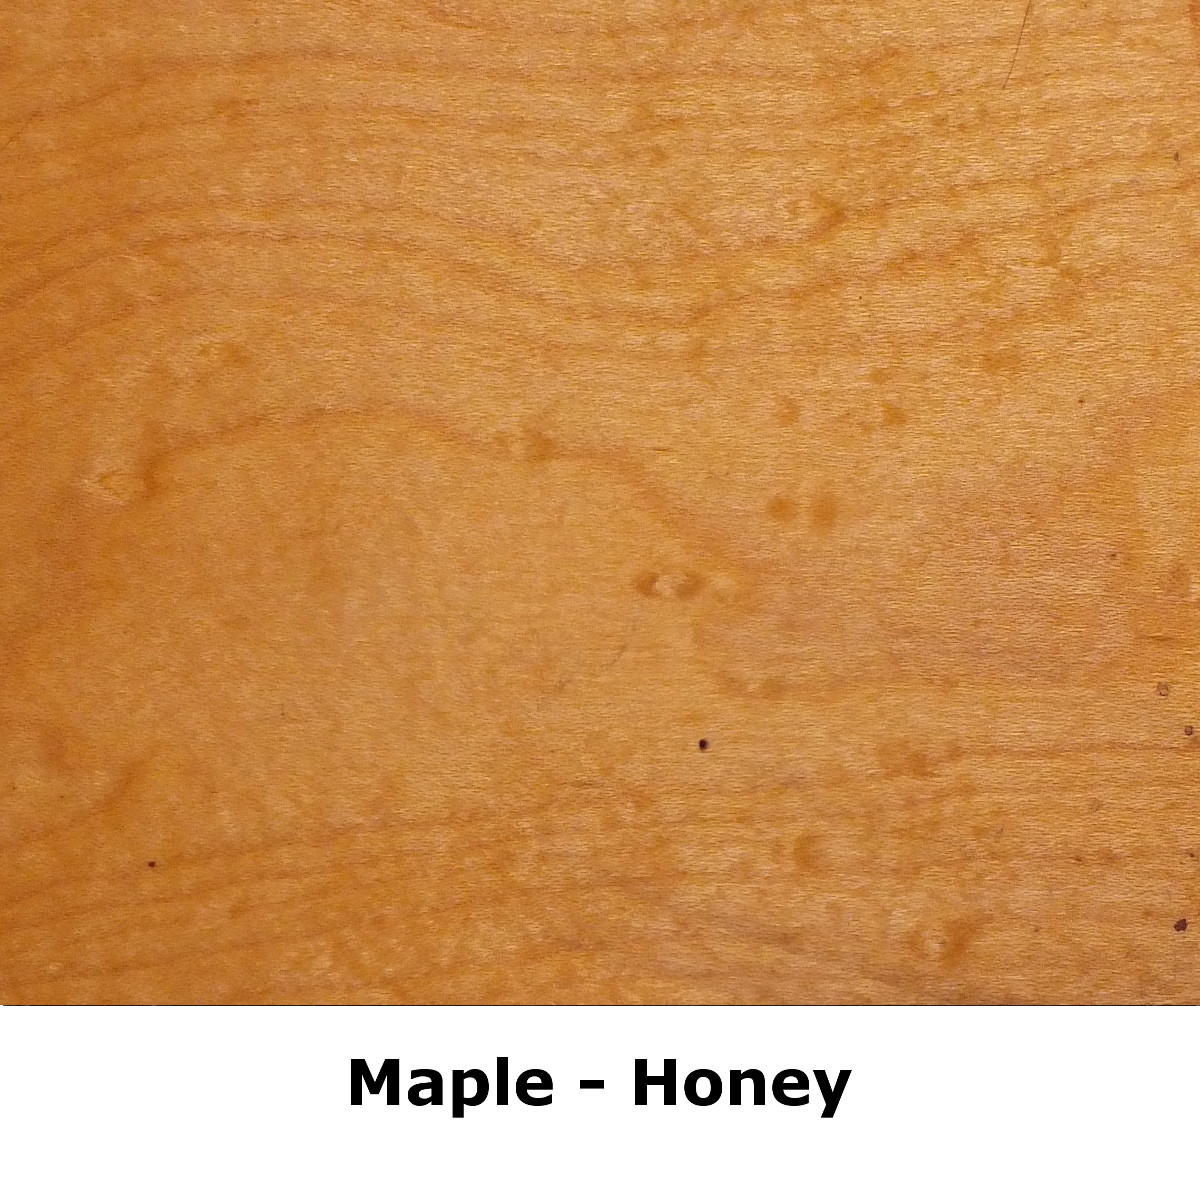 sq maple honey.jpeg